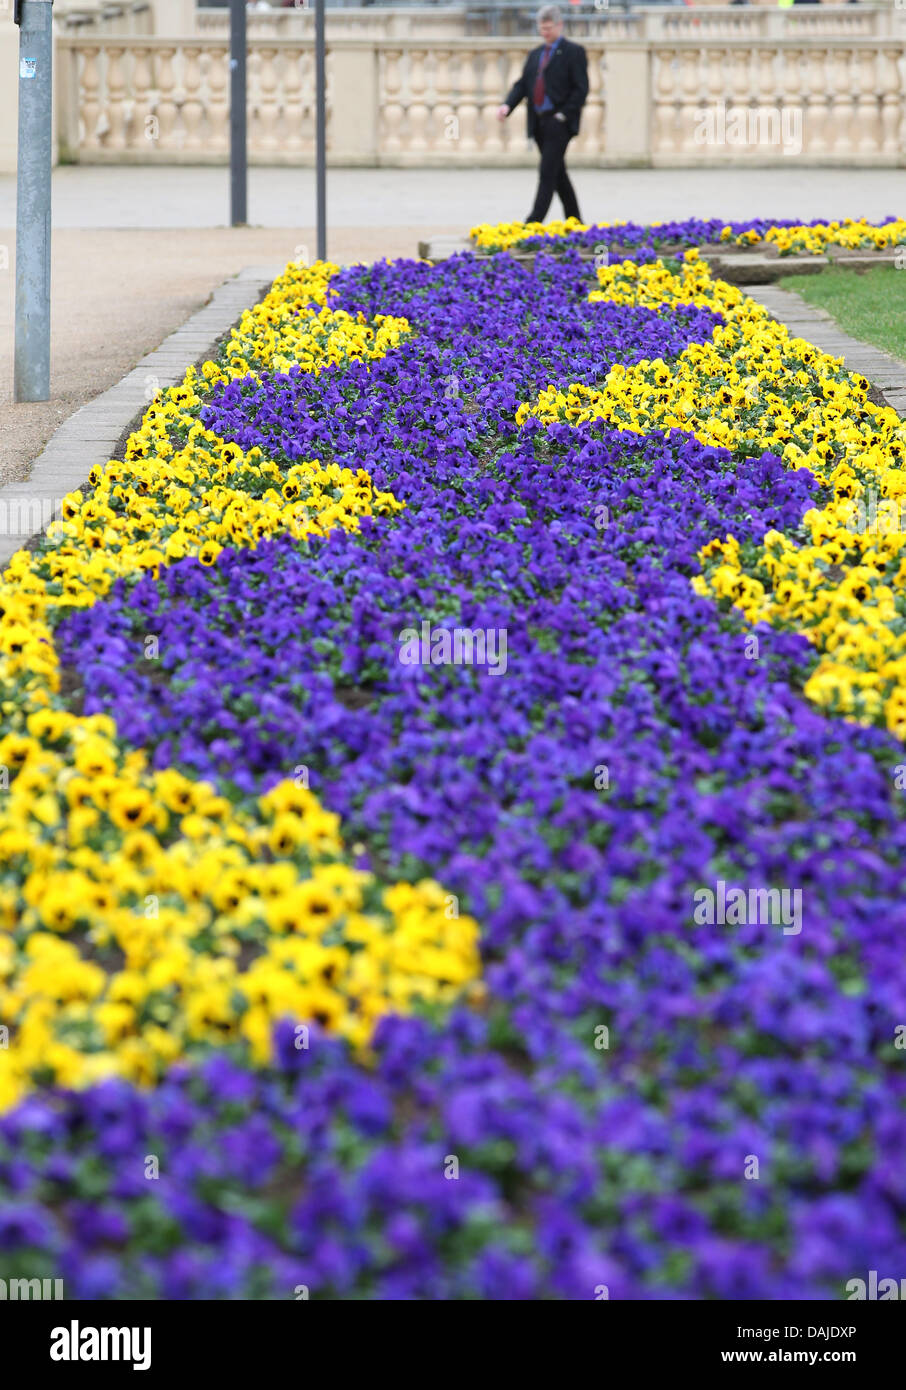 Yellow and blue pansies cover the city centre in schwerin germany yellow and blue pansies cover the city centre in schweringermany 06 dajdxpg mightylinksfo